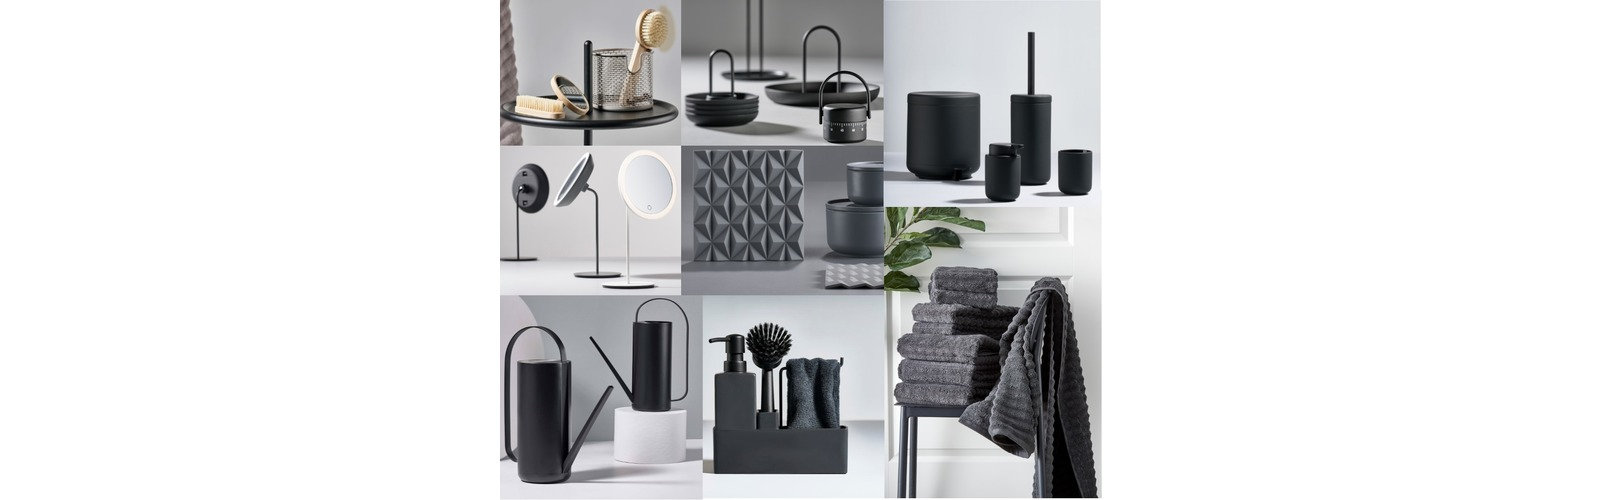 Zone Denmark - Bathroom / Kitchen / Barware - Day and Age